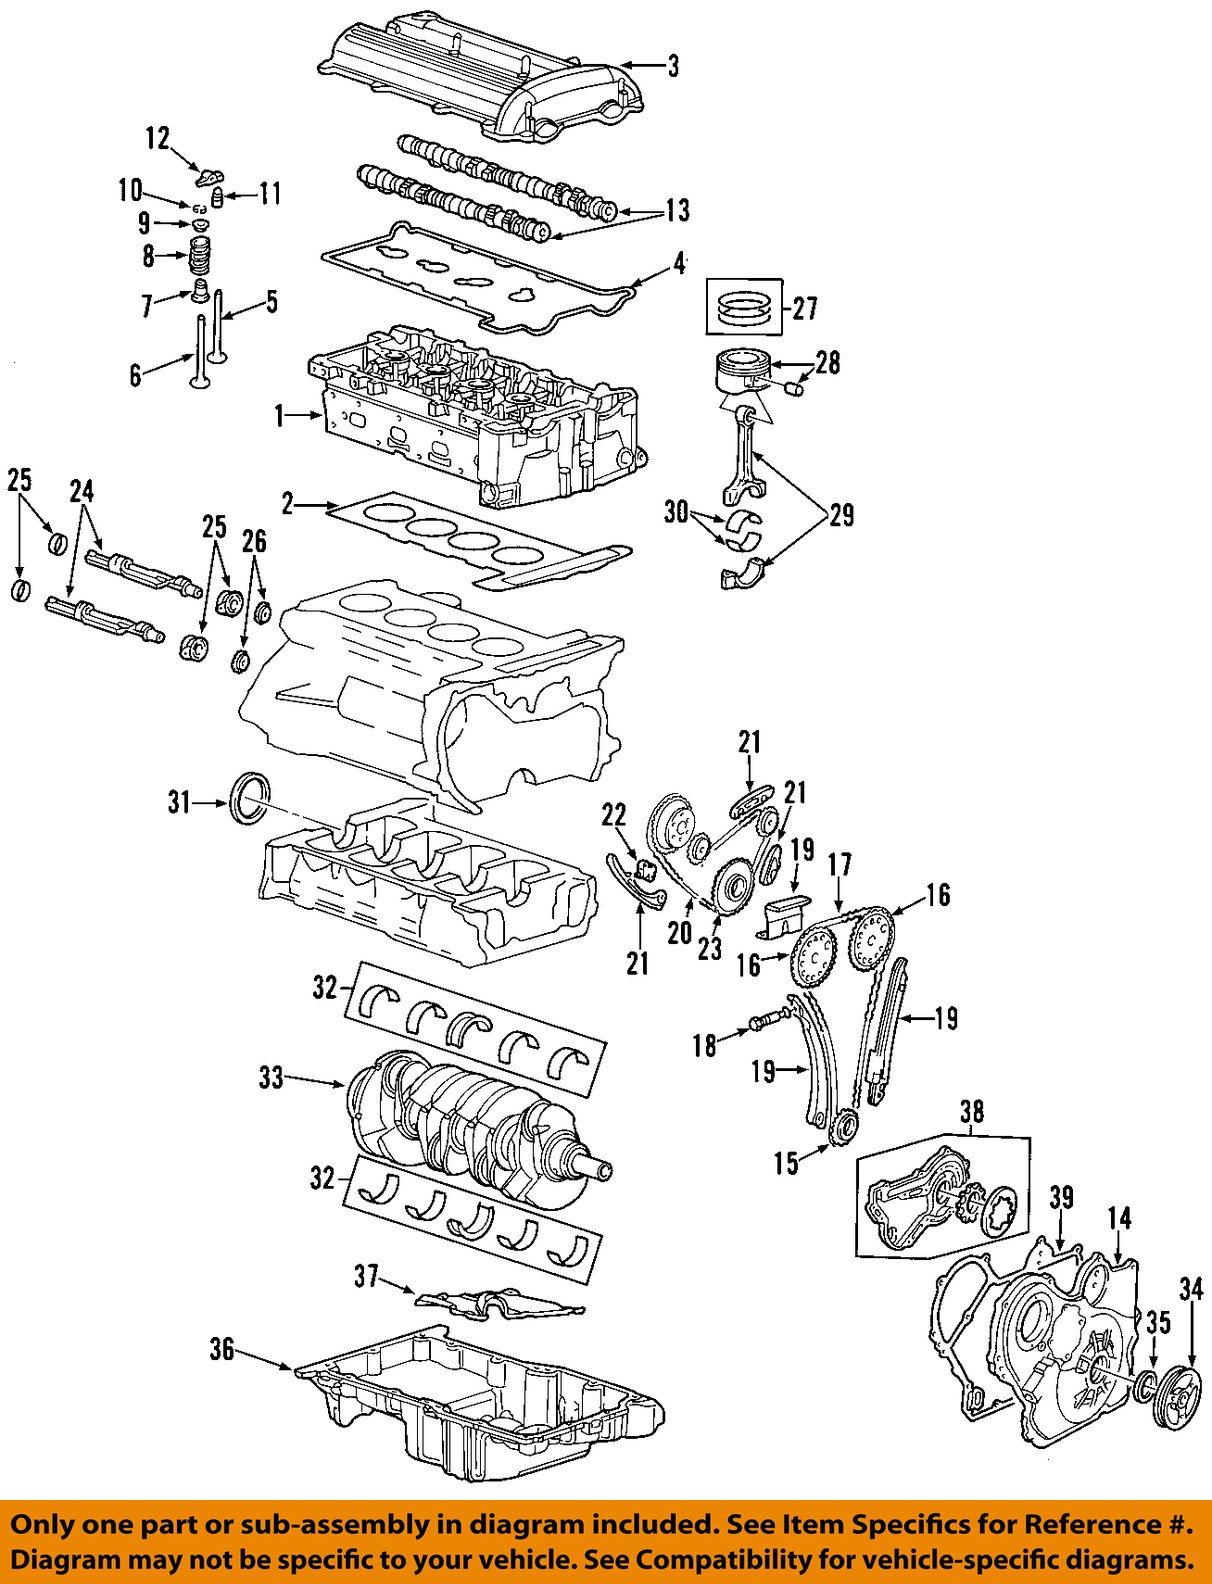 hight resolution of 2007 saturn vue engine diagram basic electronics wiring diagram 2001 saturn sc1 engine diagram 2004 saturn